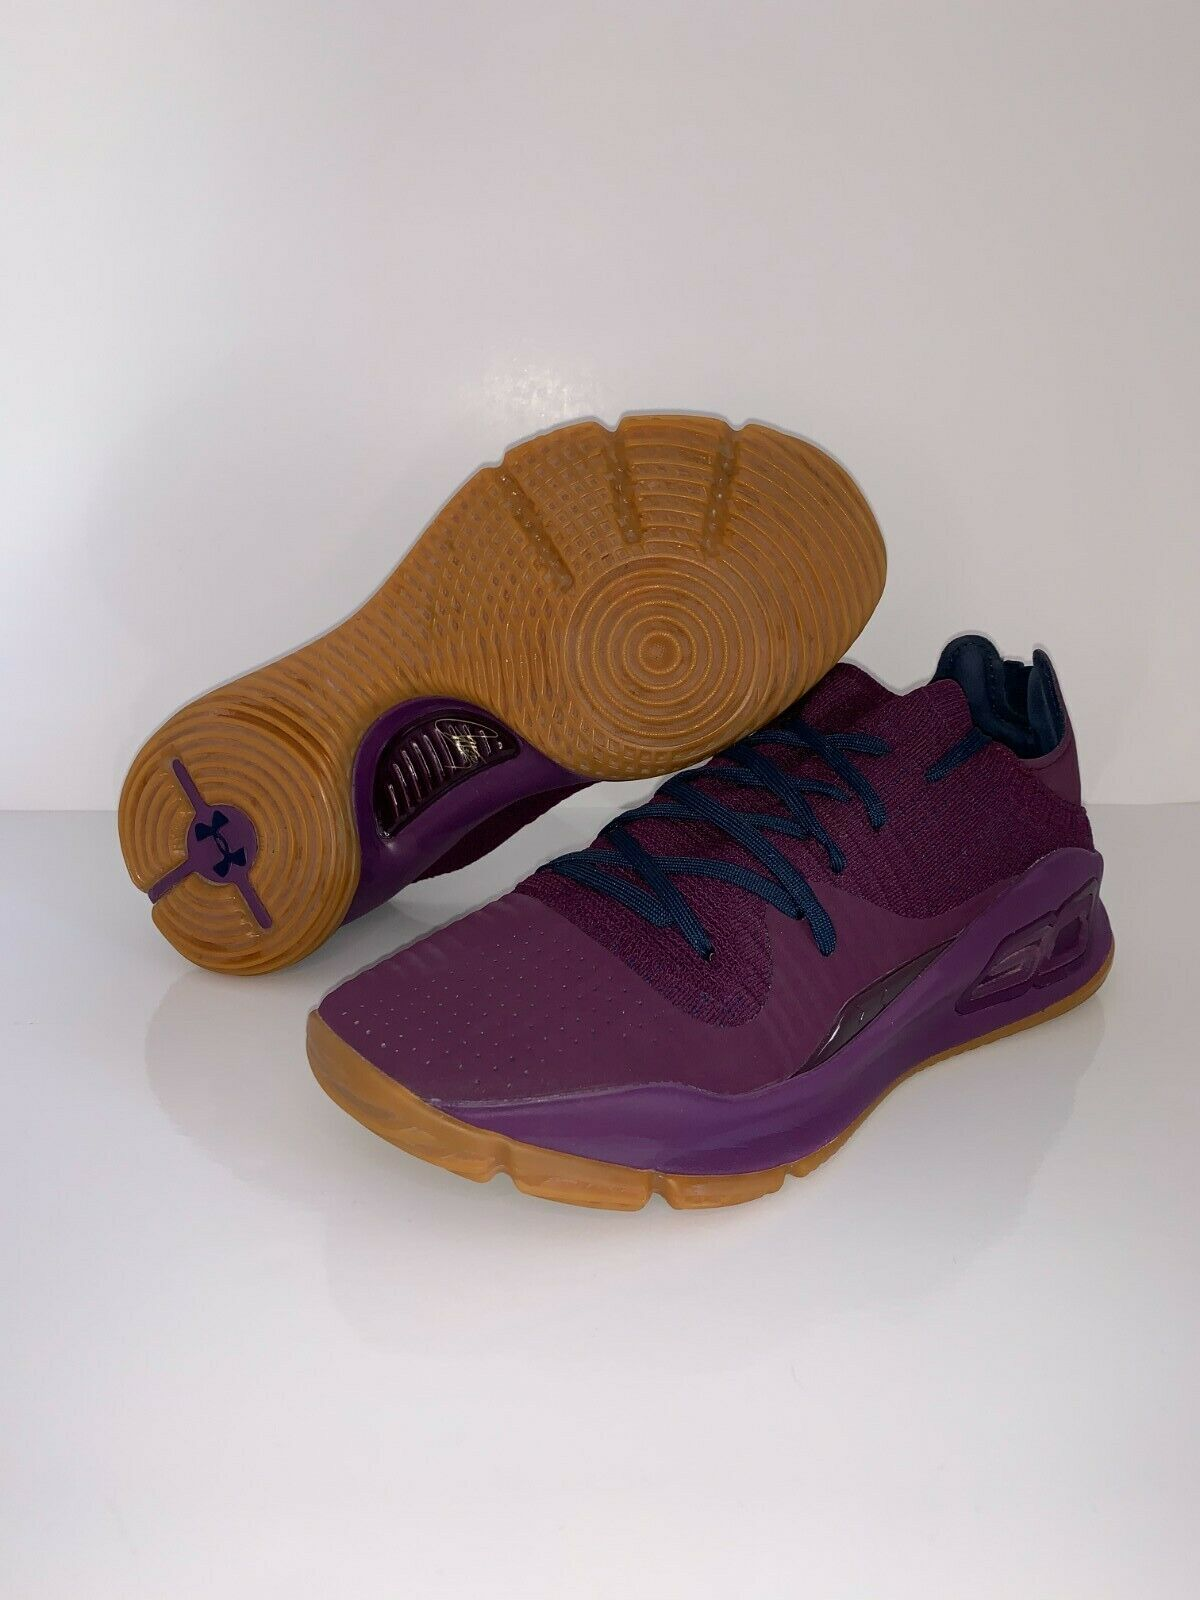 Under Amour Curry 4 Low Merlot Size-9 (Basketball Shoes)